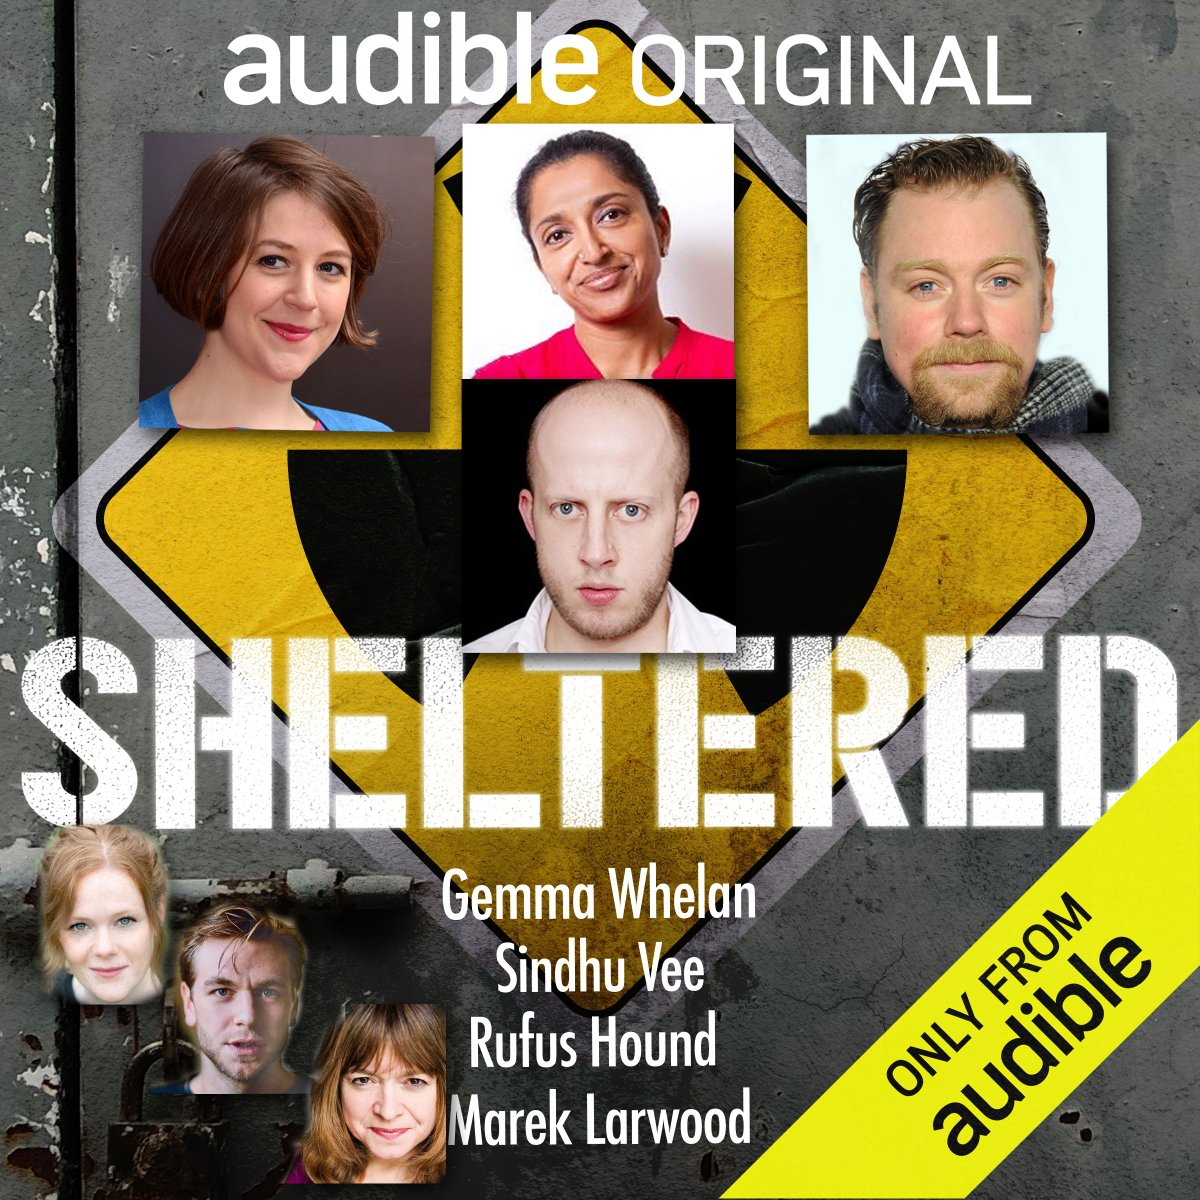 WARNING: THIS AUDIBLE ORIGINAL CONTAINS RUDE WORDS, SEXY STUFF, CARTOON VIOLENCE & GIANT RADIOACTIVE MEGA BADGERS. Laugh out loud larks with @WhelanGemma @RufusHound @MarekLarwood @WilfScolding @Flickduncan #AlanaRamsay Sound Design by @TomAlexVoice Produced by Me & #DavidMorley